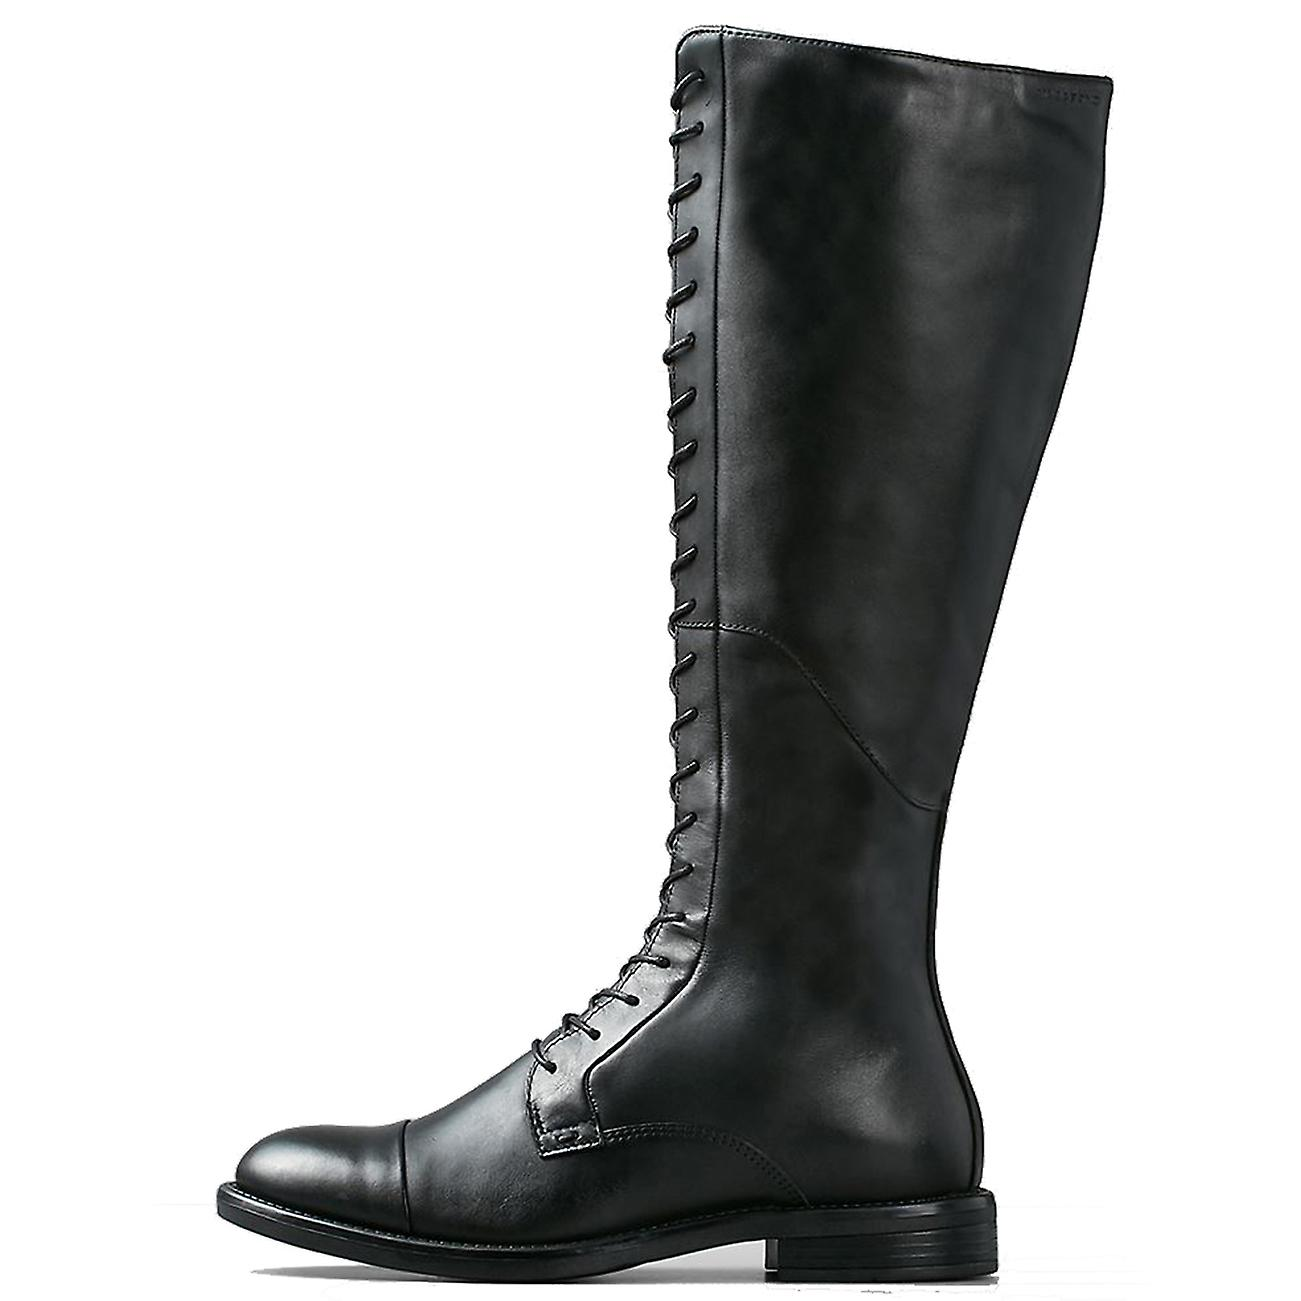 Knee High Smart Leather Black Boots